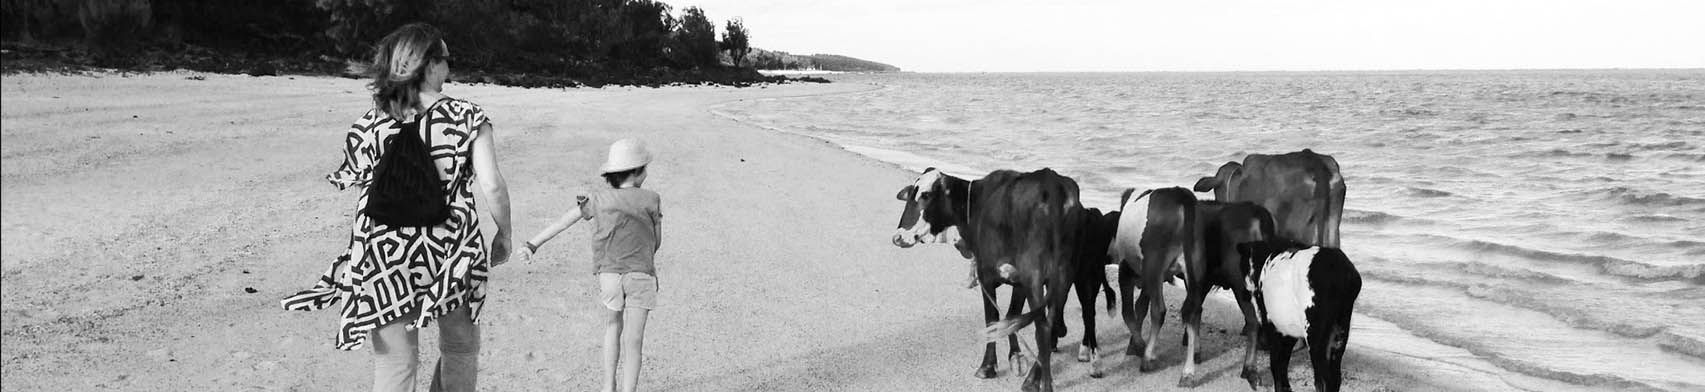 cattle_on_the_beach_bakwa_lodge_rodrigues_bw